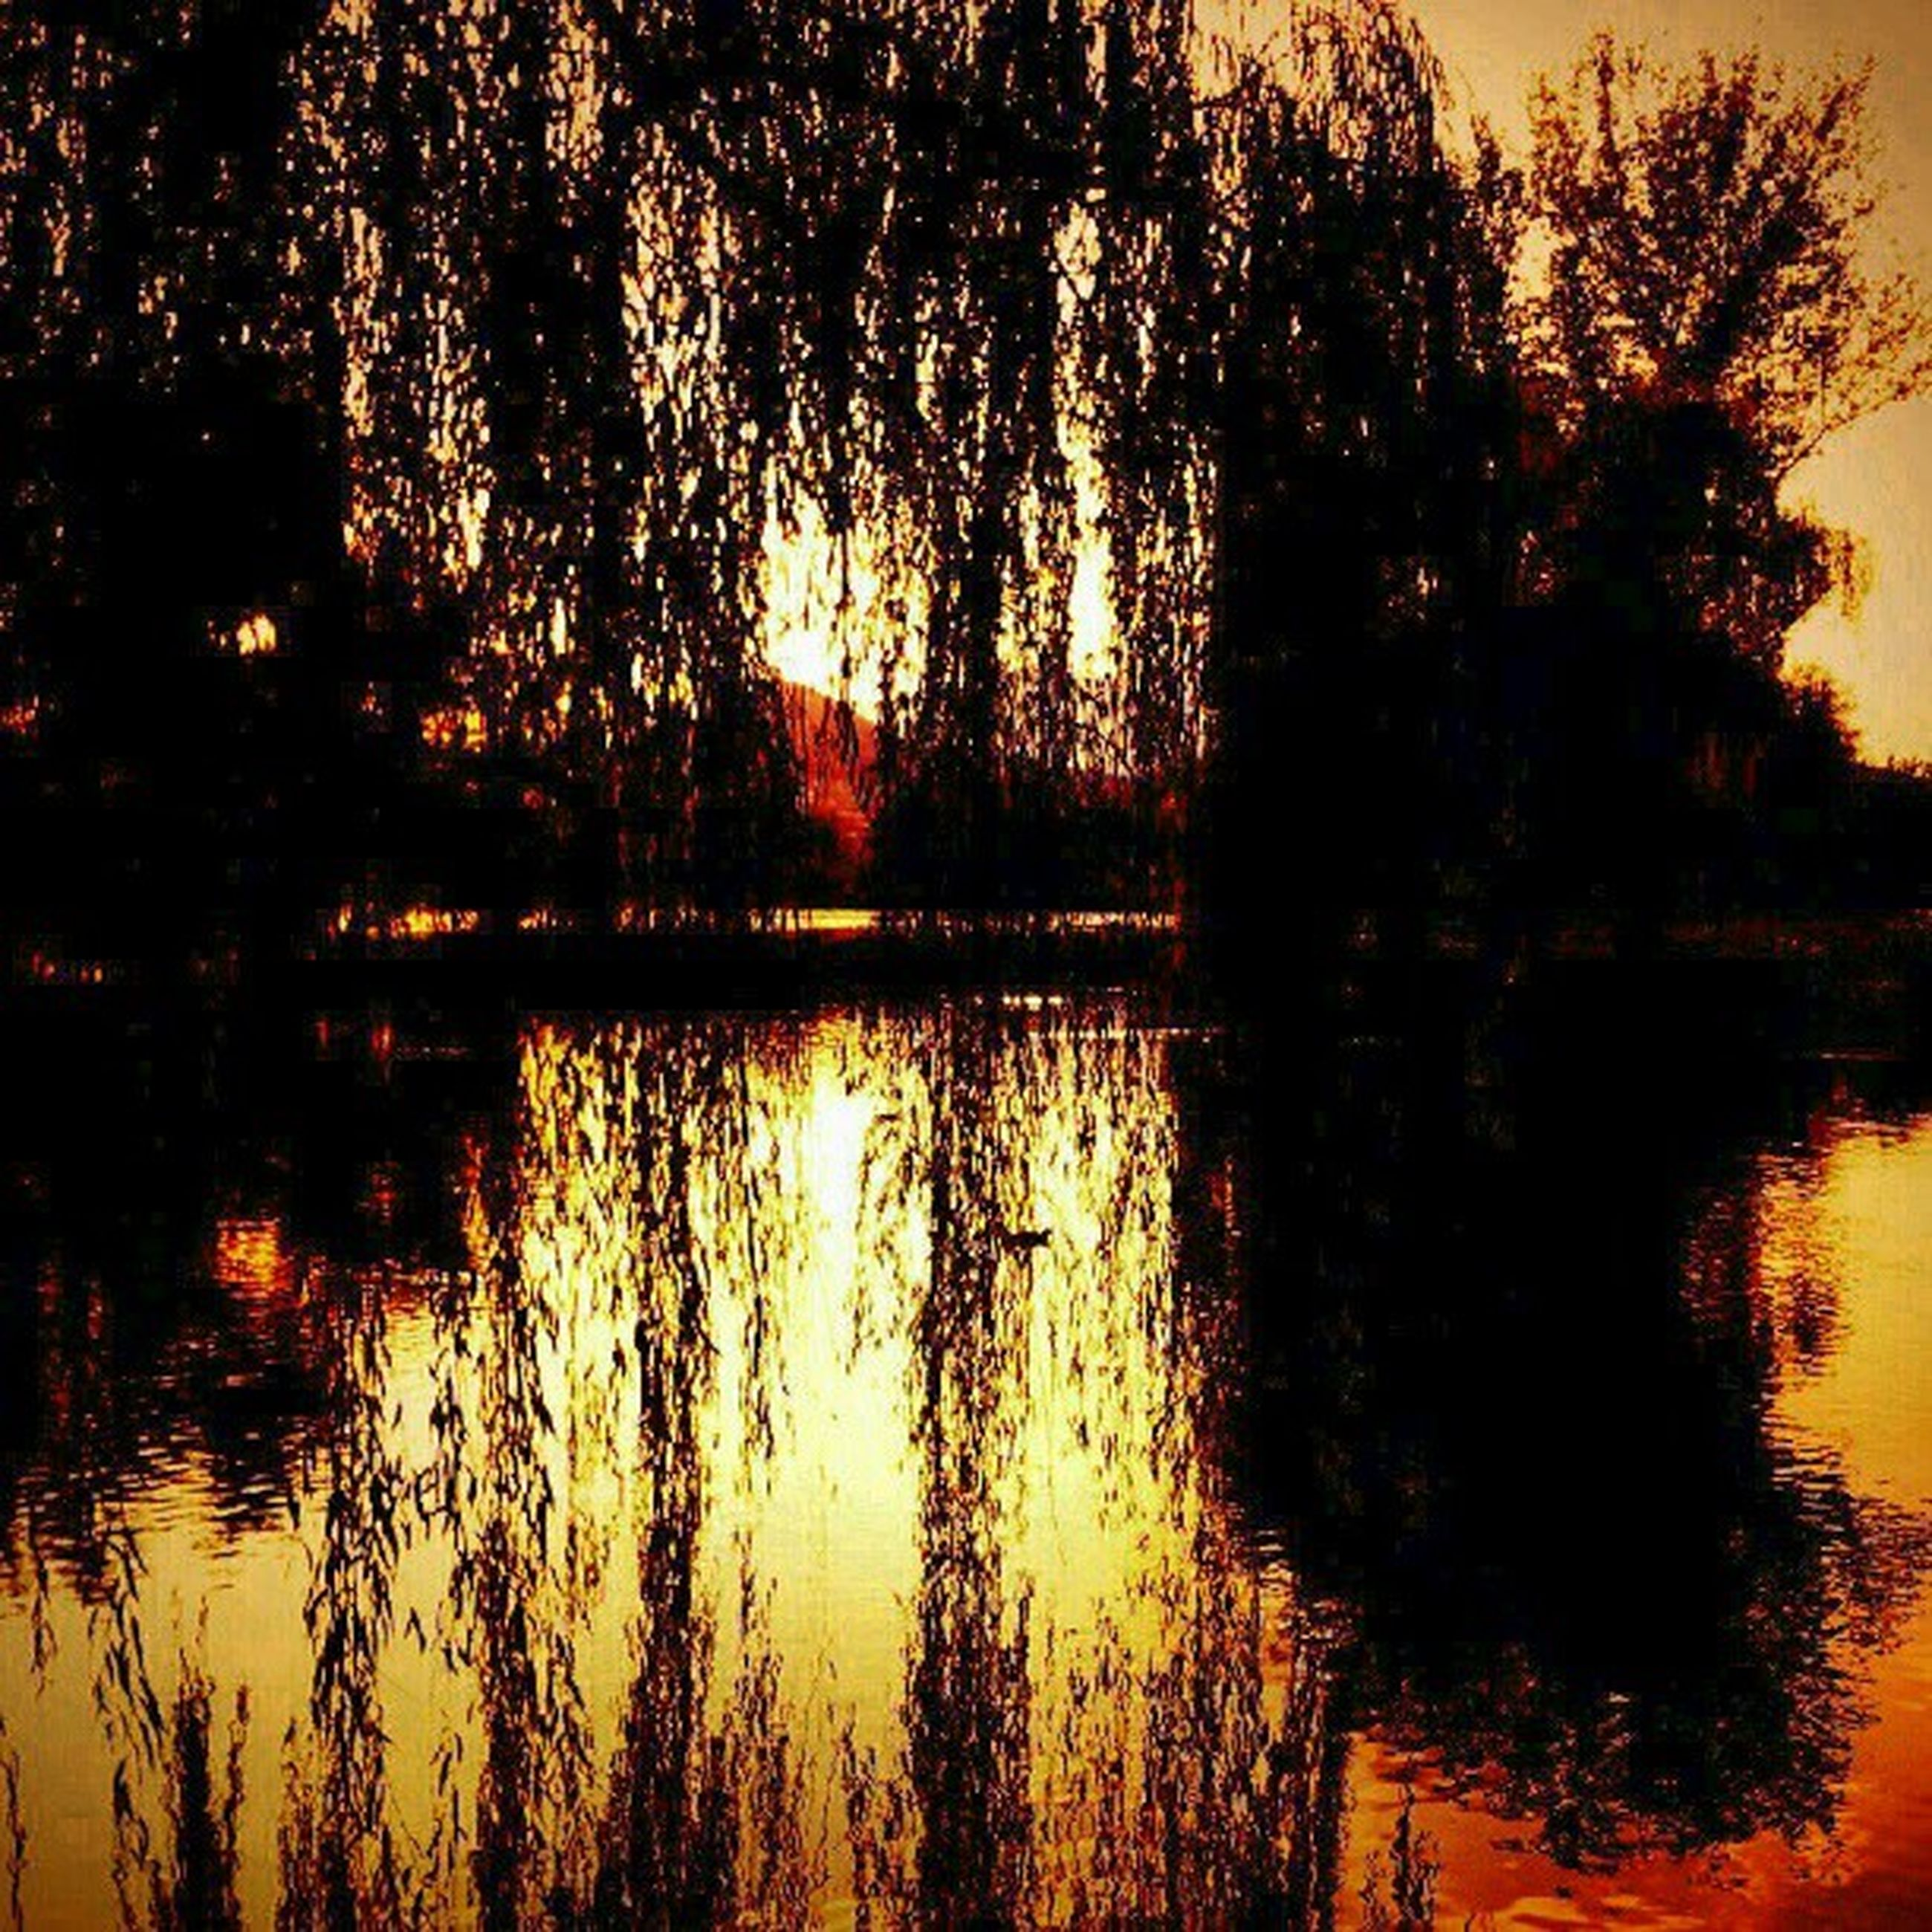 reflection, water, sunset, lake, tree, tranquility, tranquil scene, silhouette, scenics, beauty in nature, orange color, nature, waterfront, idyllic, sky, river, rippled, outdoors, sunlight, no people